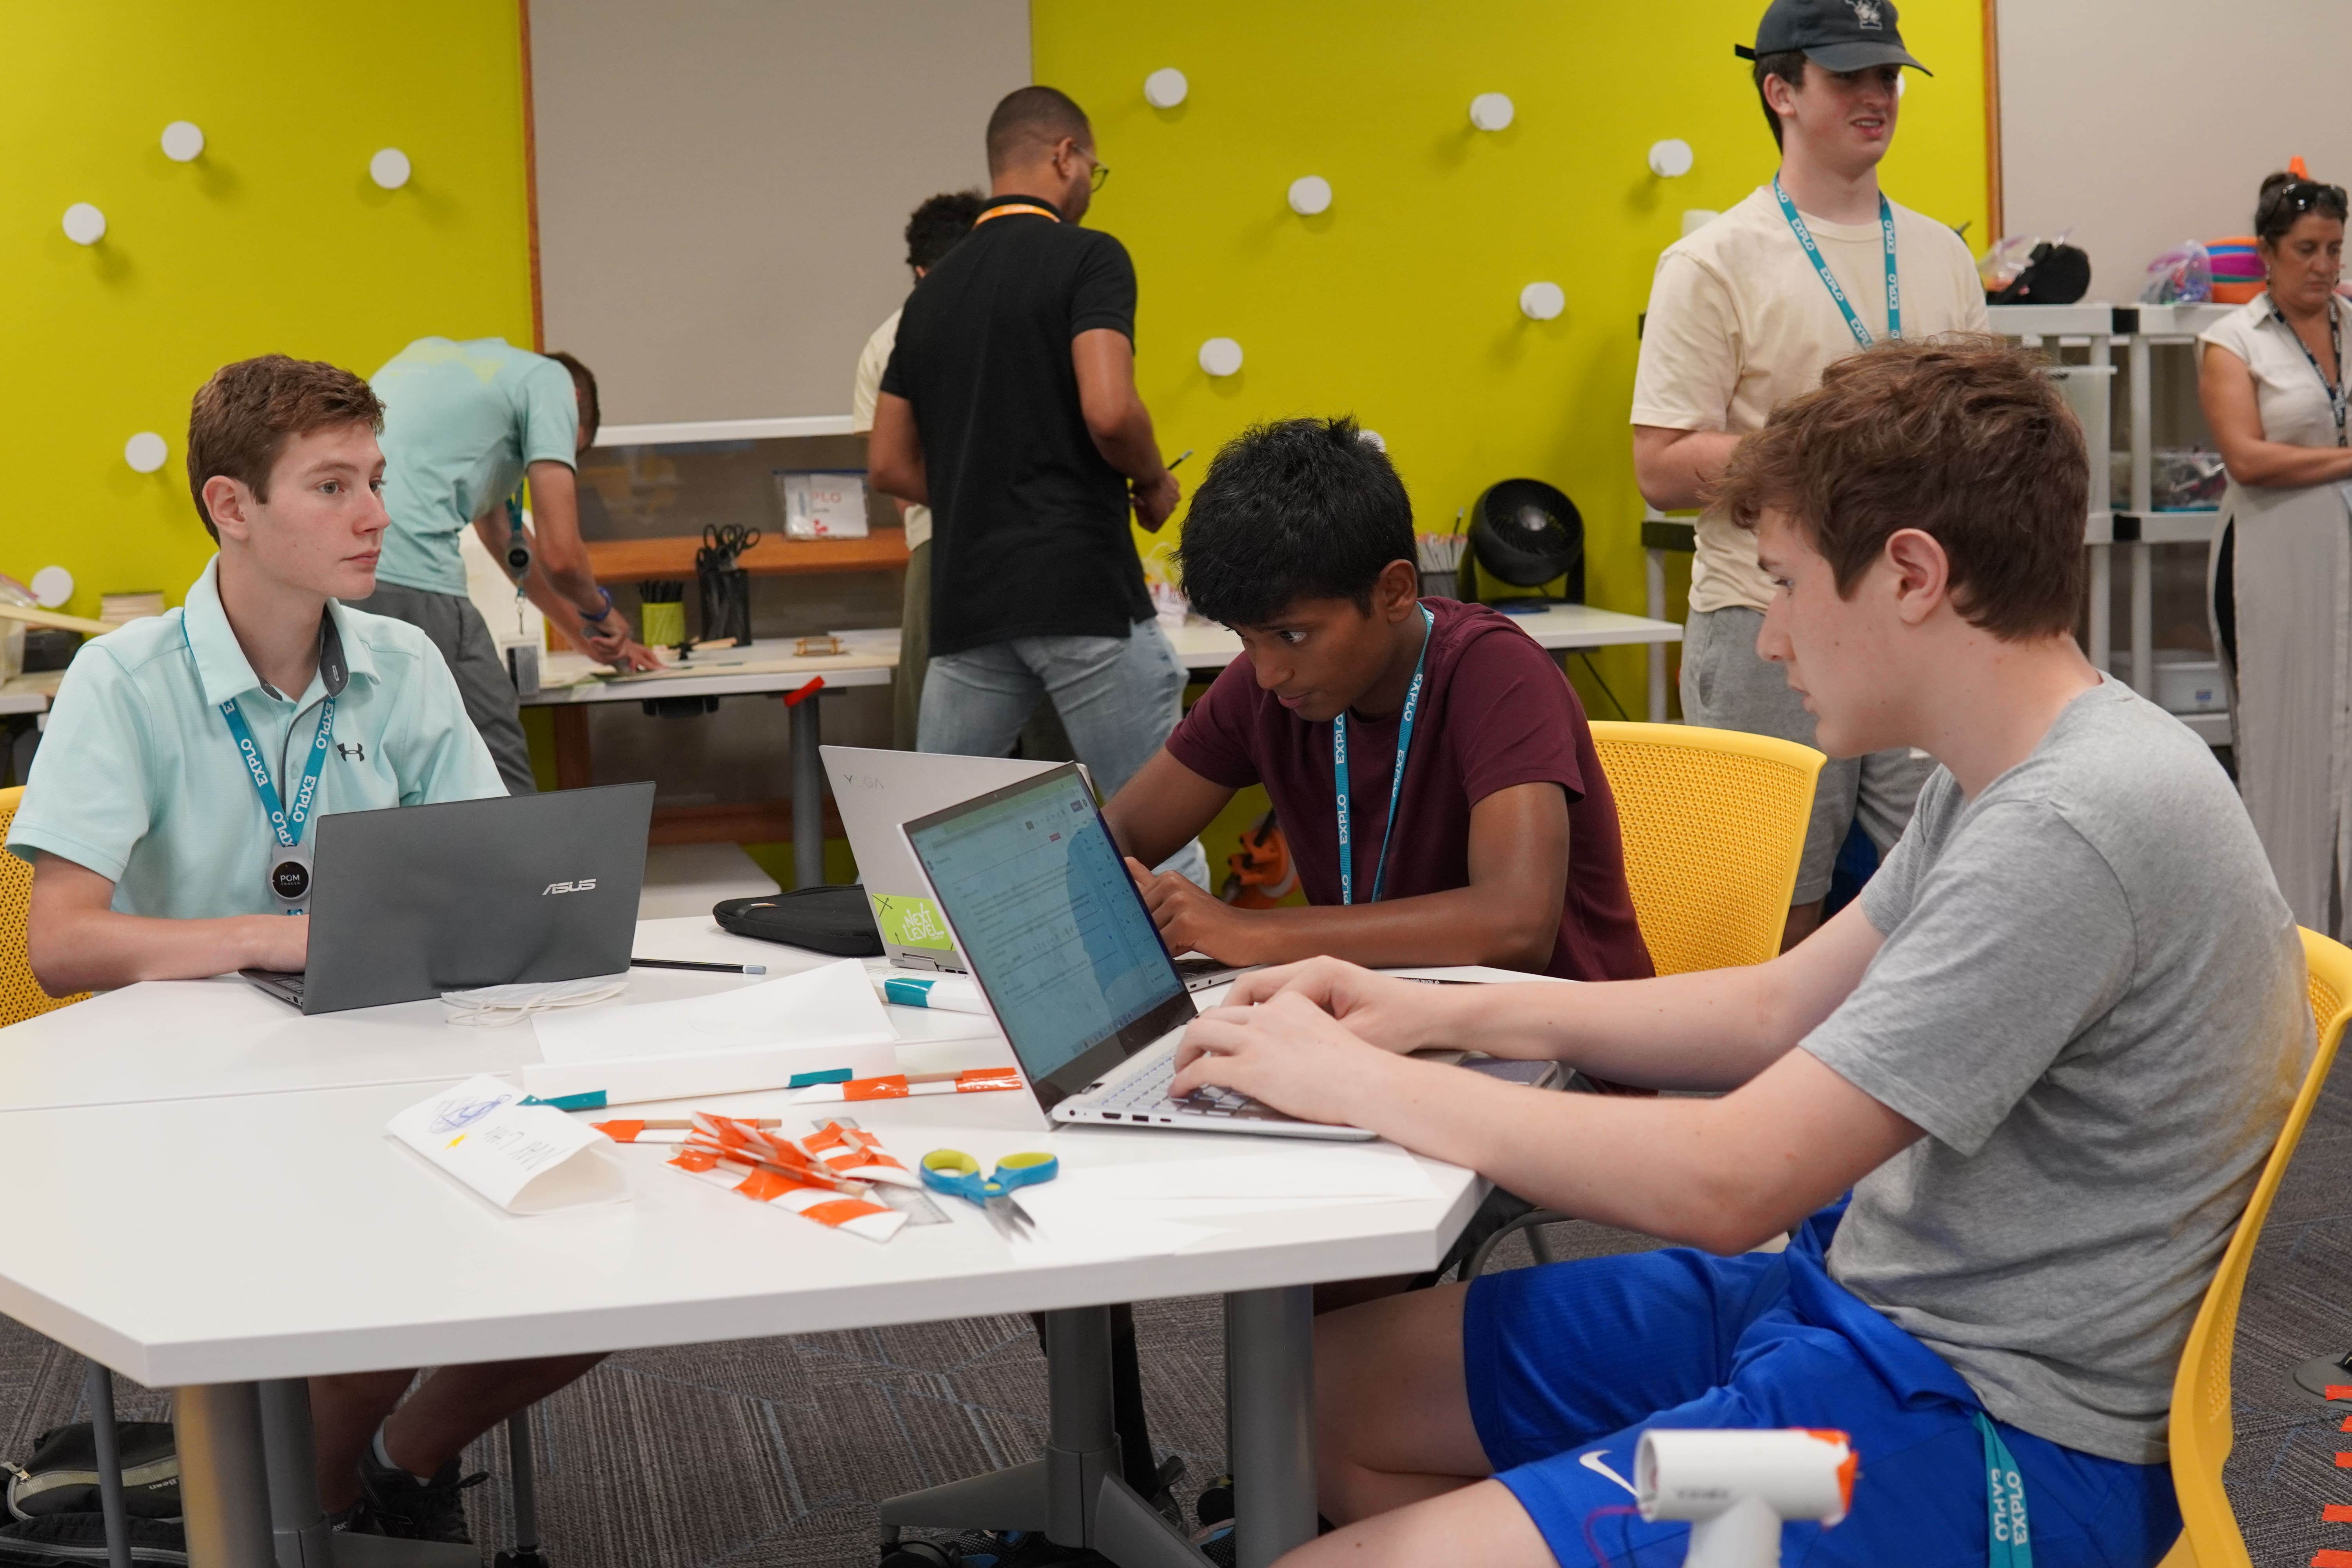 Engineering students work on their computers and at a work station in the background while designing and building their wind turbines.